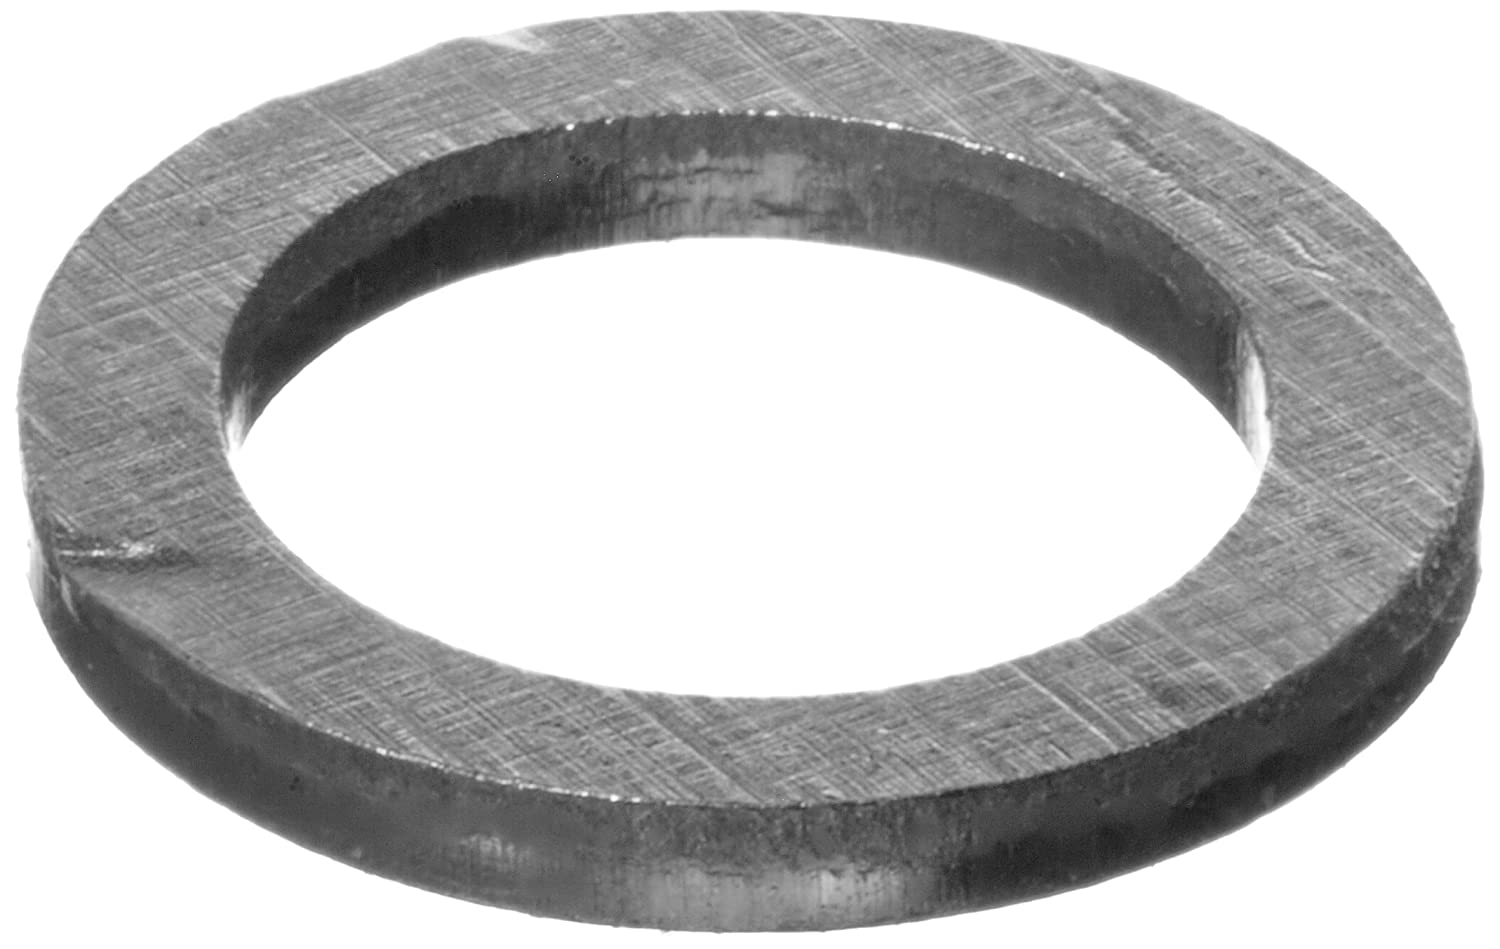 5052 Aluminum Round Shim, Unpolished (Mill) Finish, H01/H04 Temper, ASTM B209, 0.032' Thickness, 1/2' ID, 3/4' OD (Pack of 10) 0.032 Thickness 1/2 ID 3/4 OD (Pack of 10) Small Parts Inc